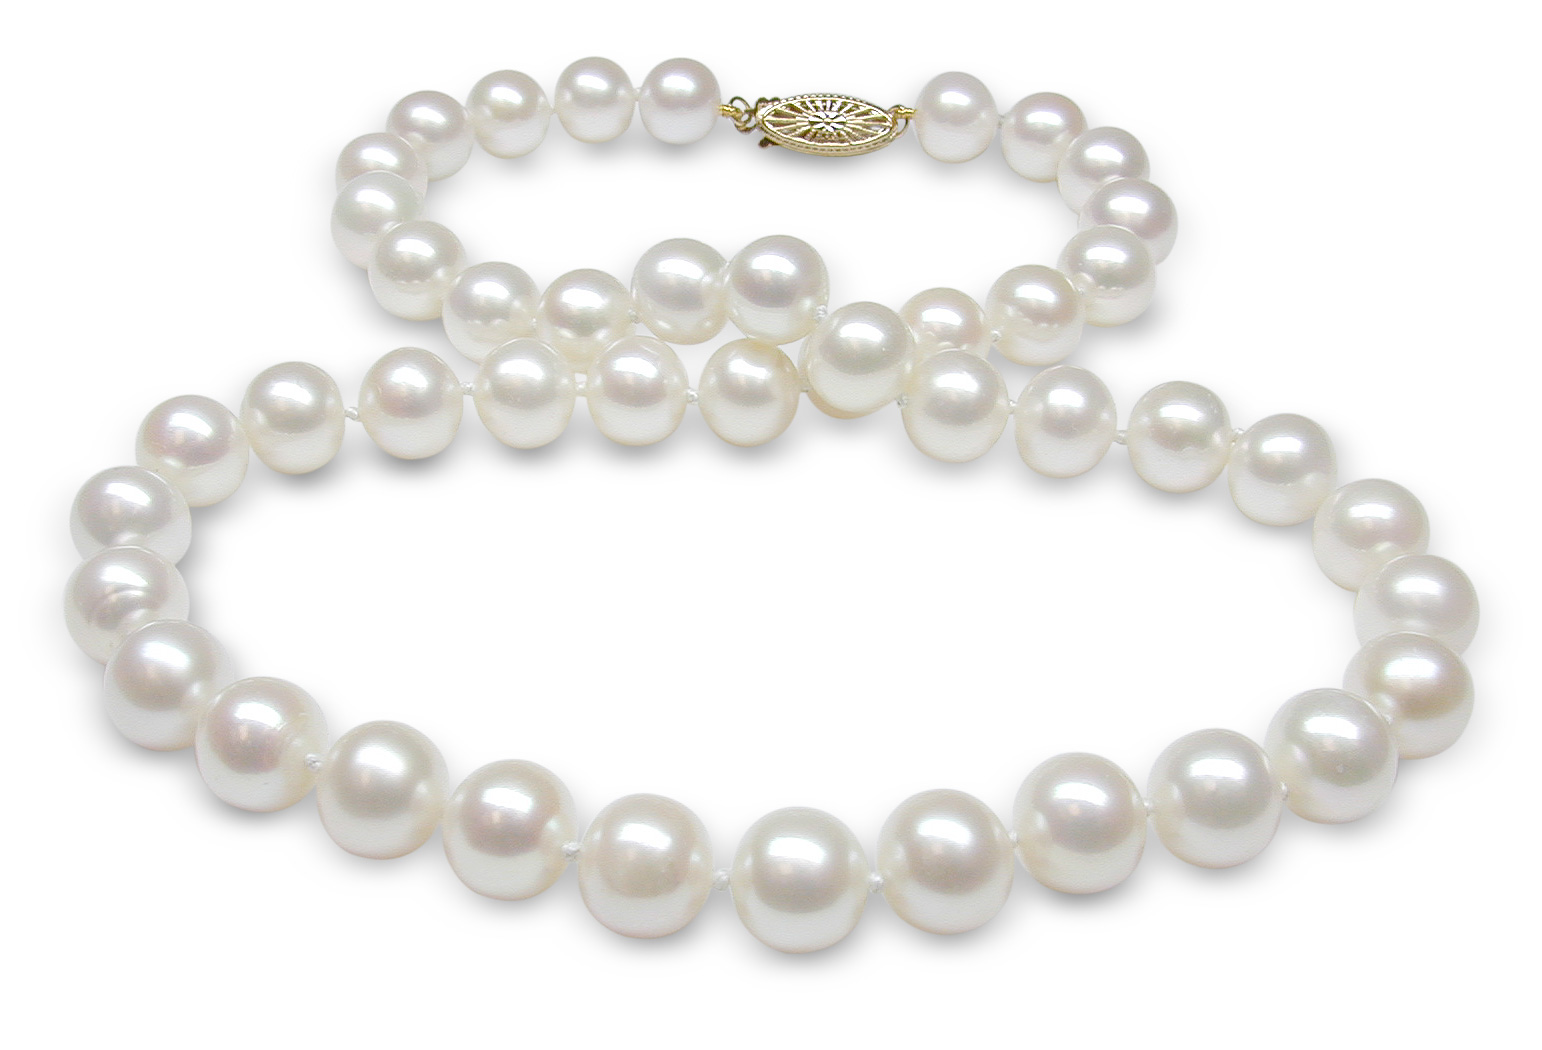 White Freshwater Cultured Pearl Necklace American Pearl